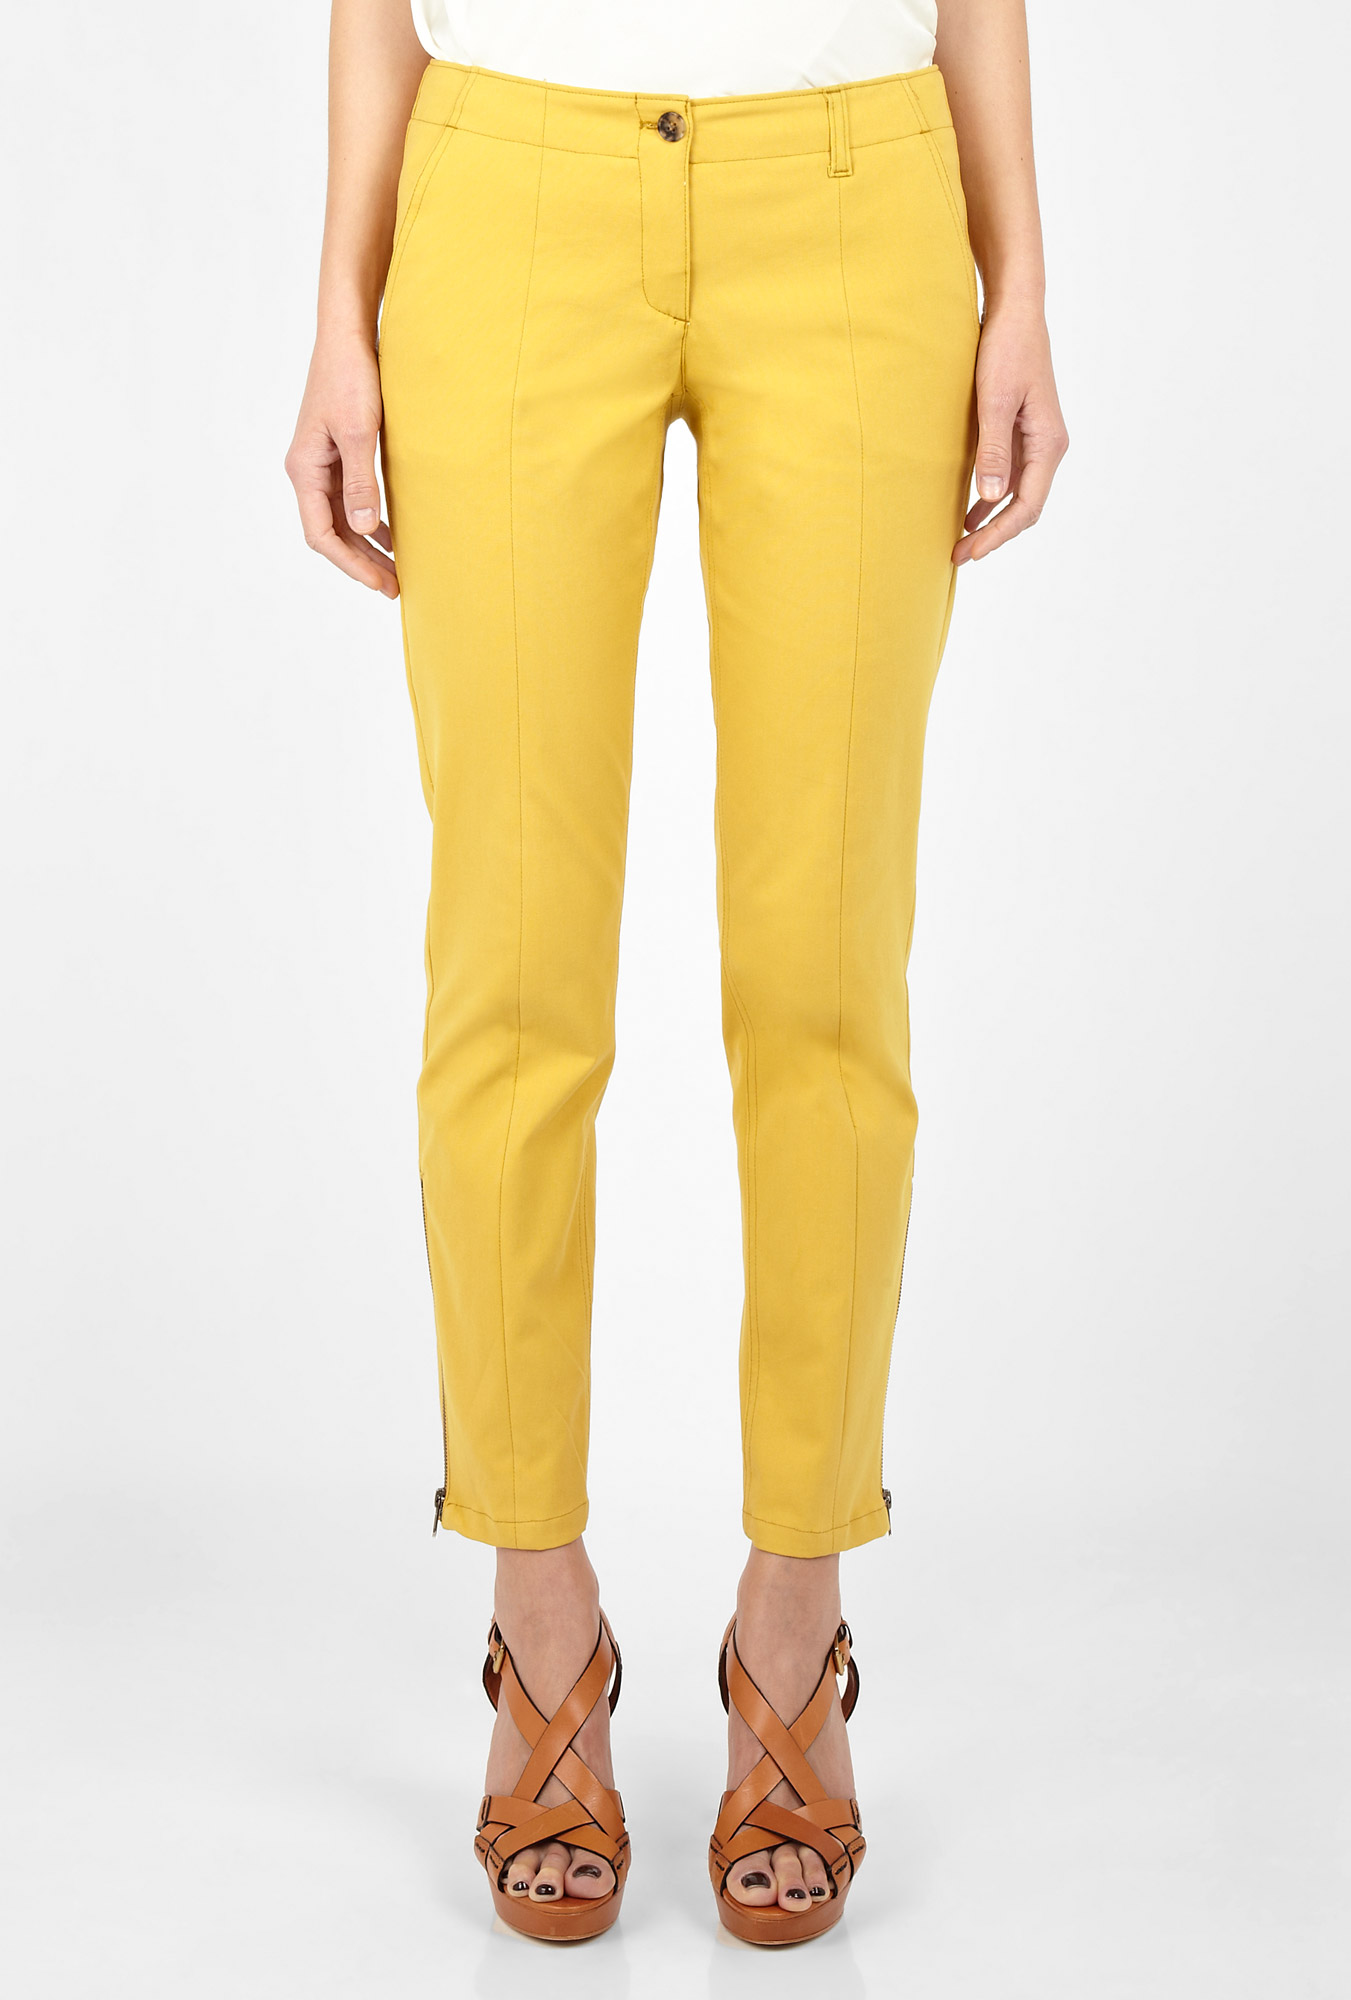 Yellow gold nickela stretch canvas trousers by theory